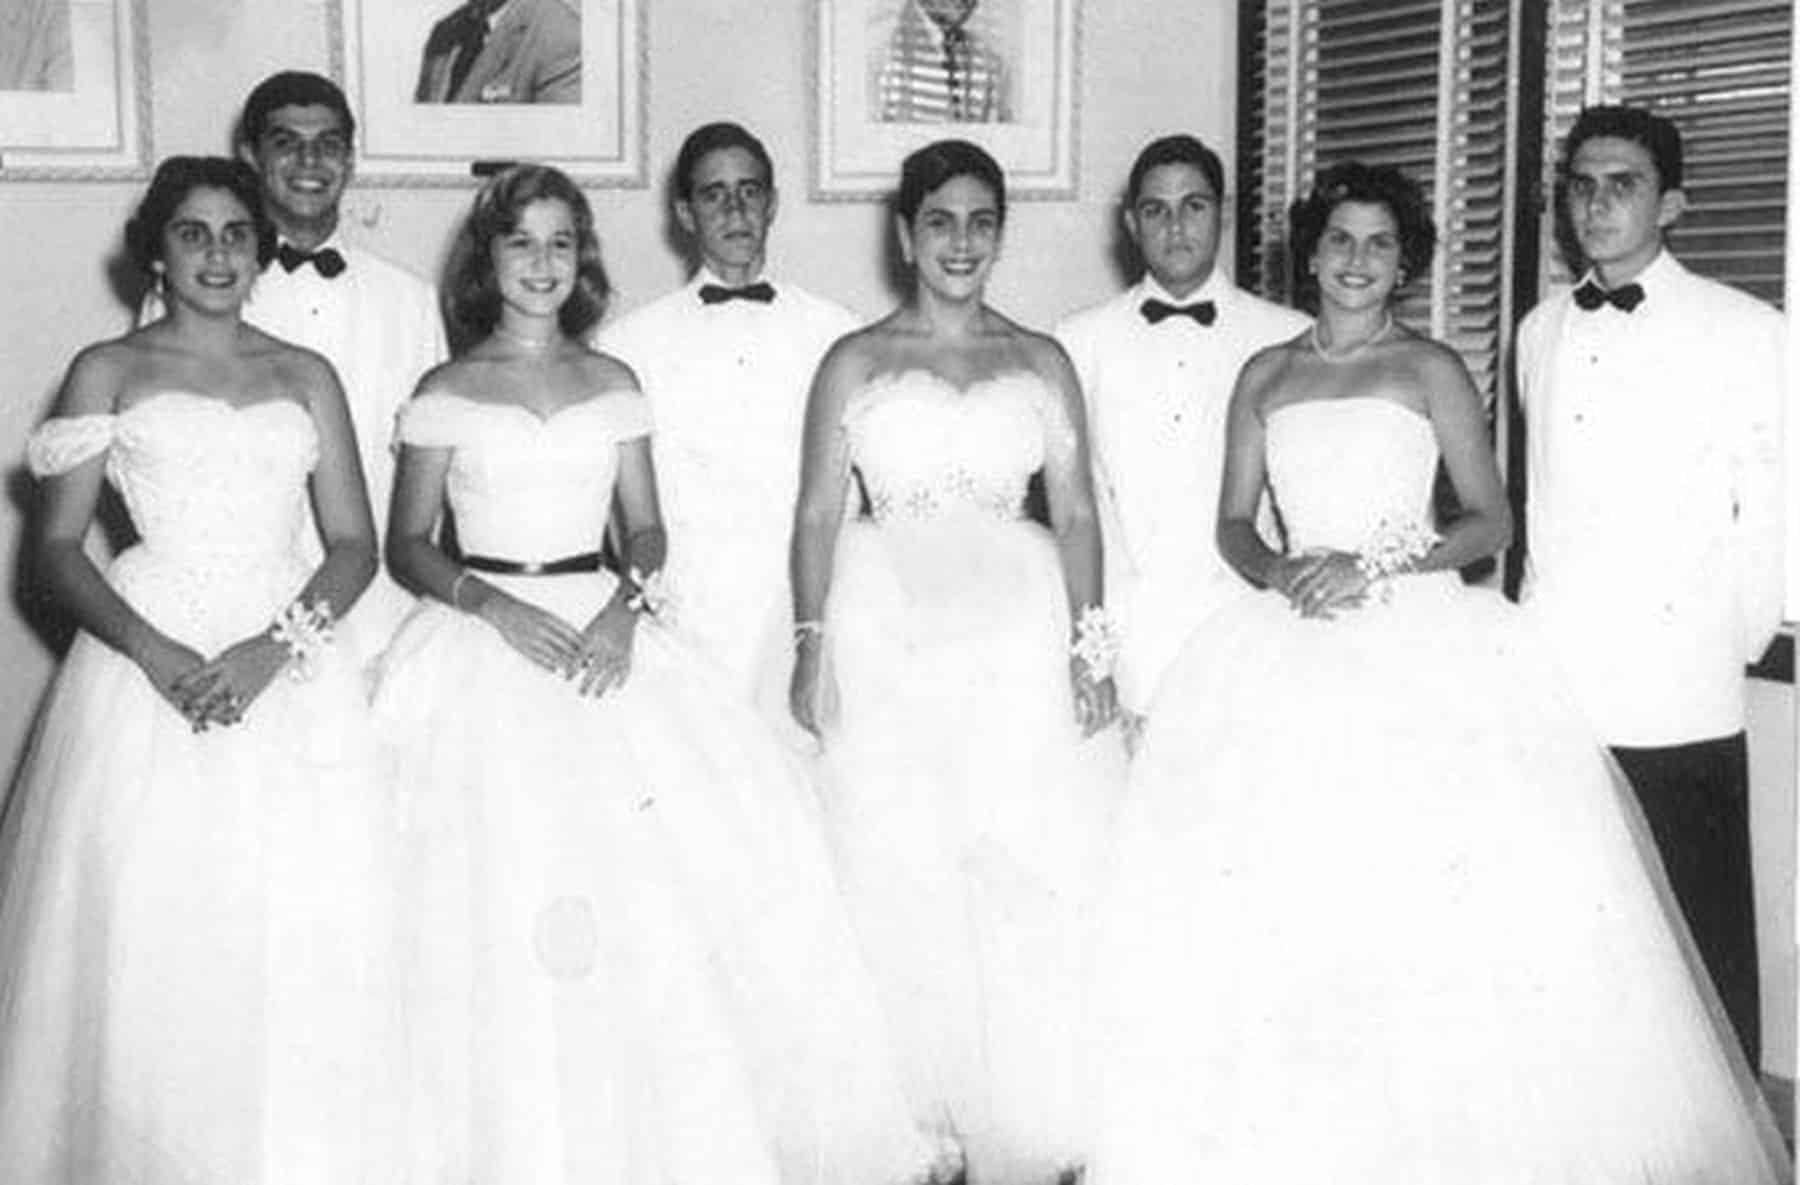 Debutantes and escorts, 1950s